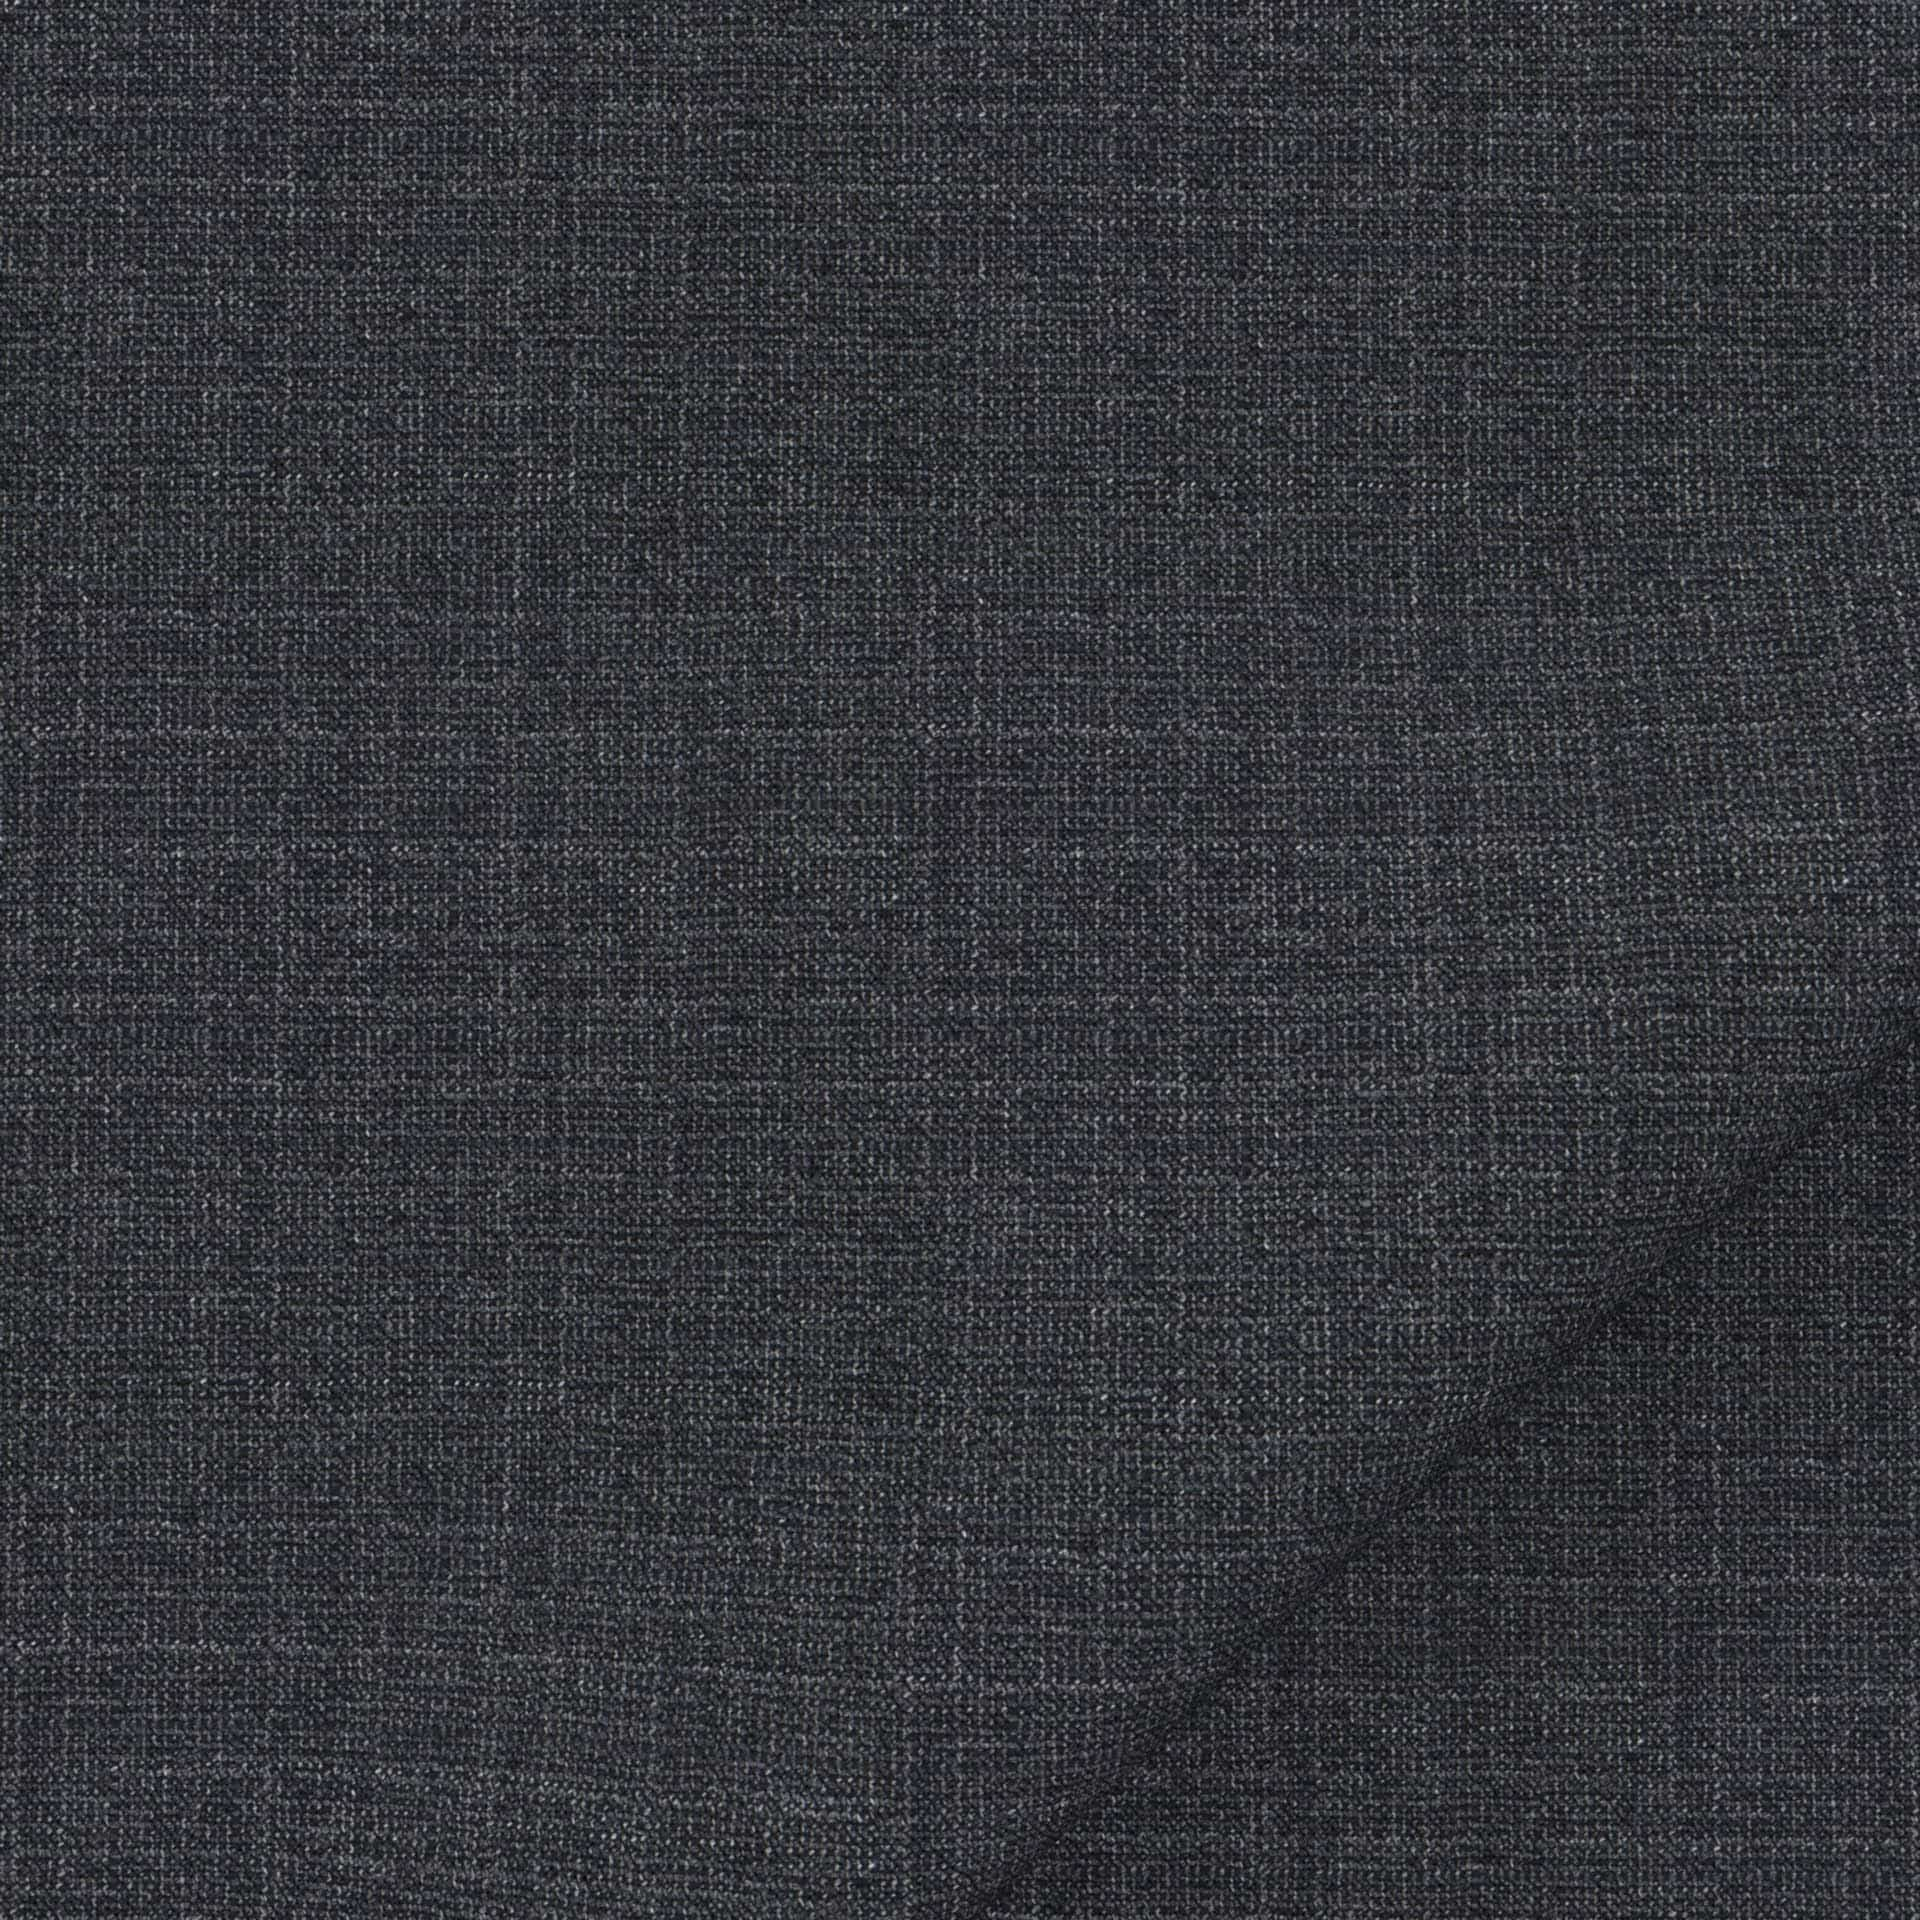 Custom-made-suit-plain-weave-gray-Italian-fabric-onceaday